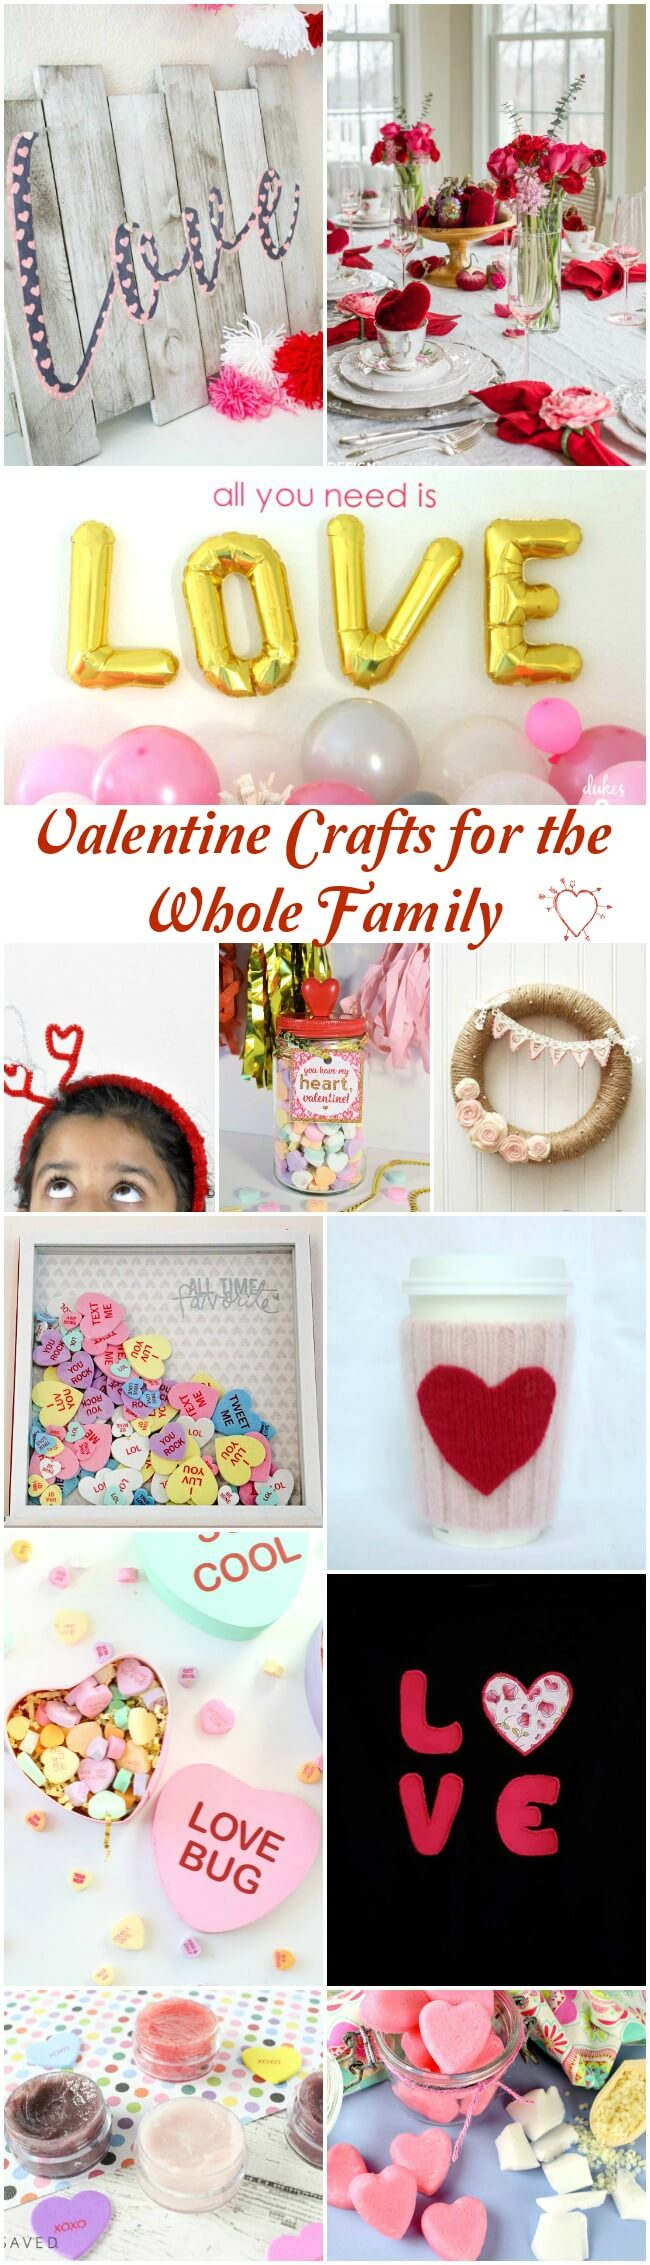 A collage image with over a dozen of the Valentine Day crafts that are included in the round up post.